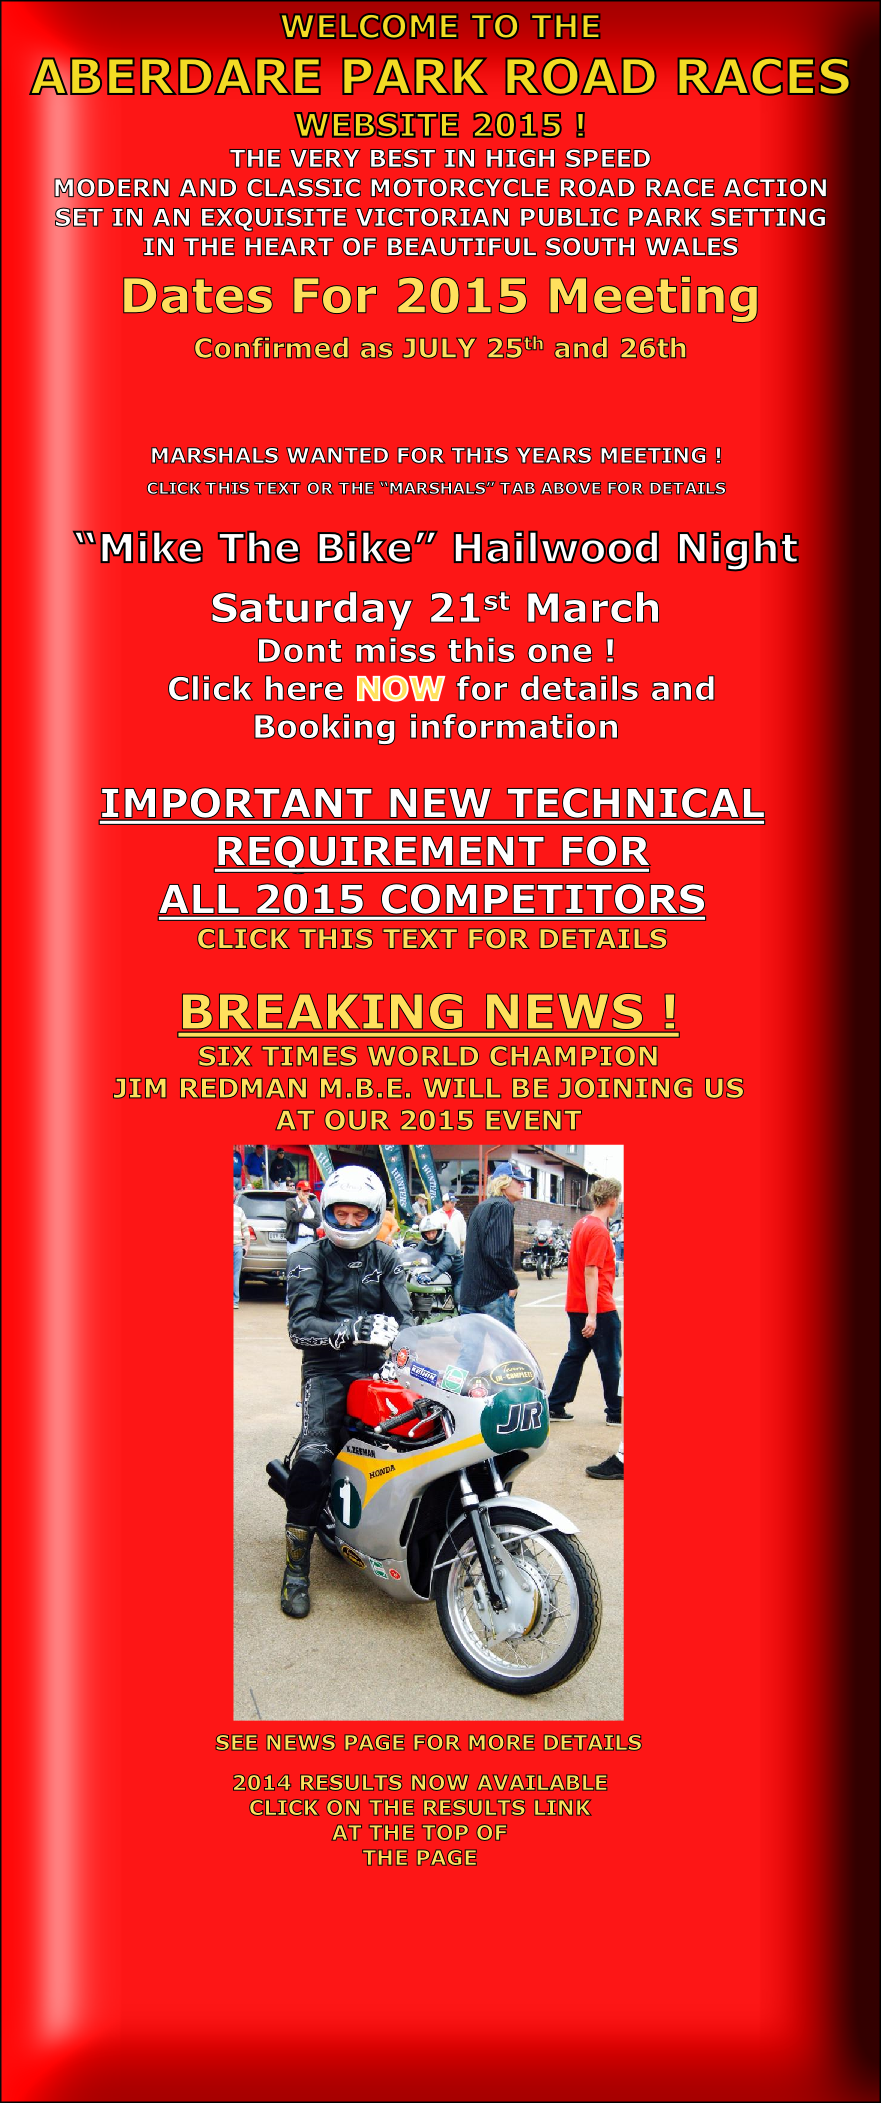 MARSHALS WANTED FOR THIS YEARS MEETING !